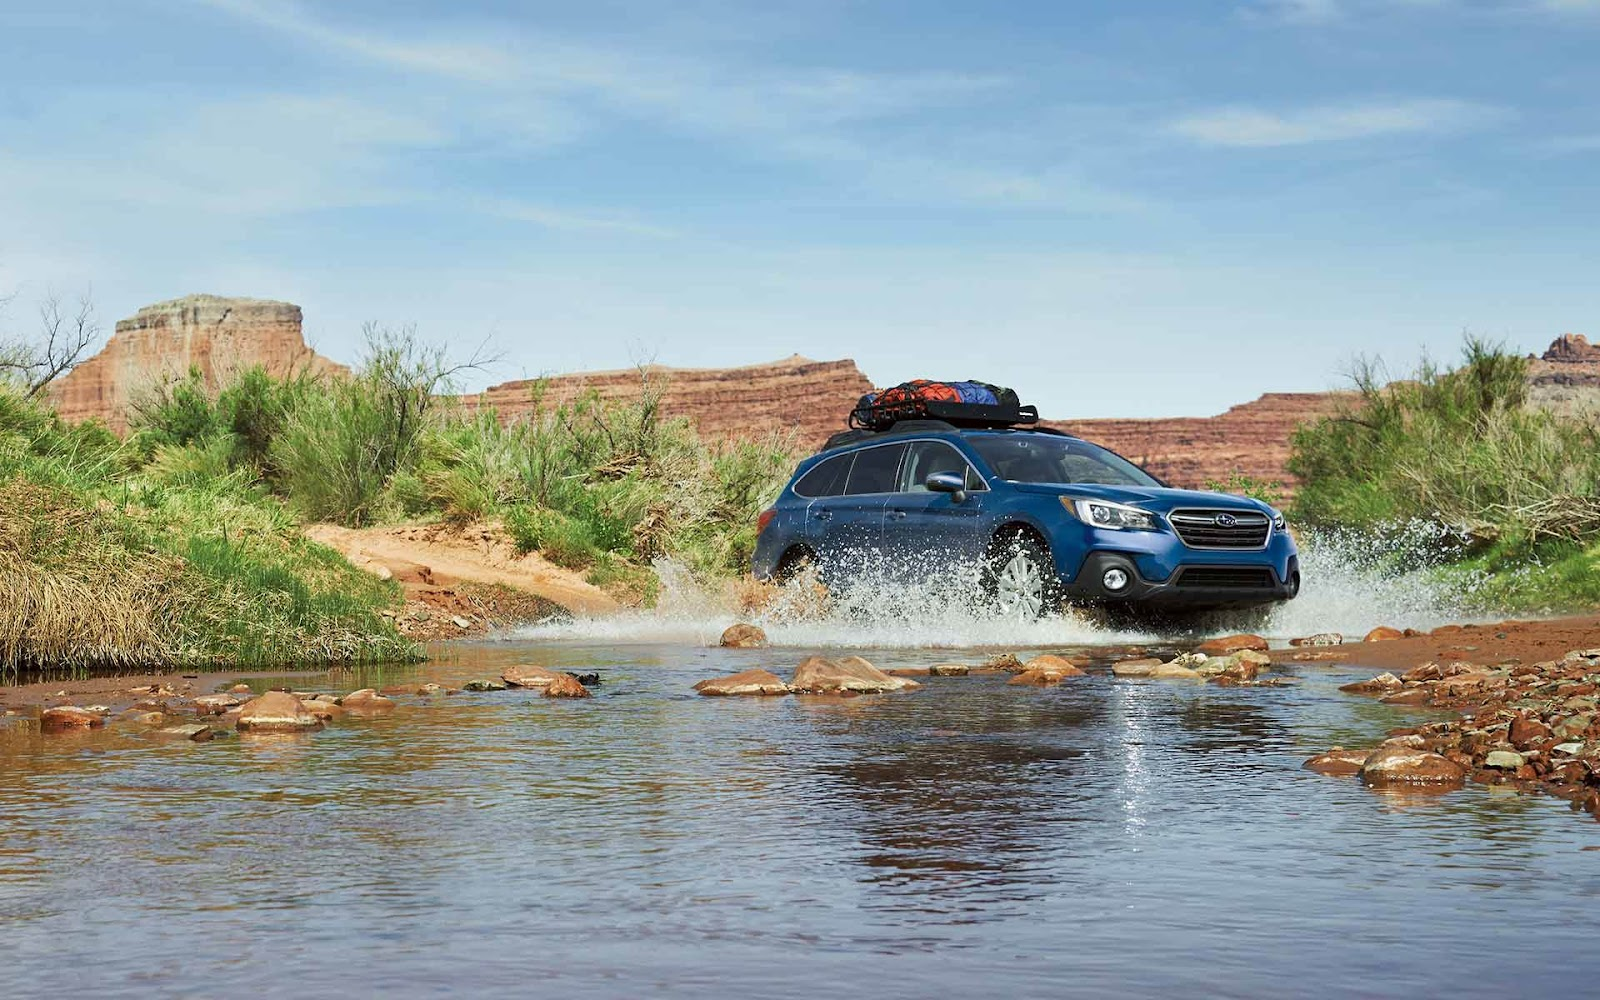 Get Directions To Adventure Subaru In Fayetteville Ar